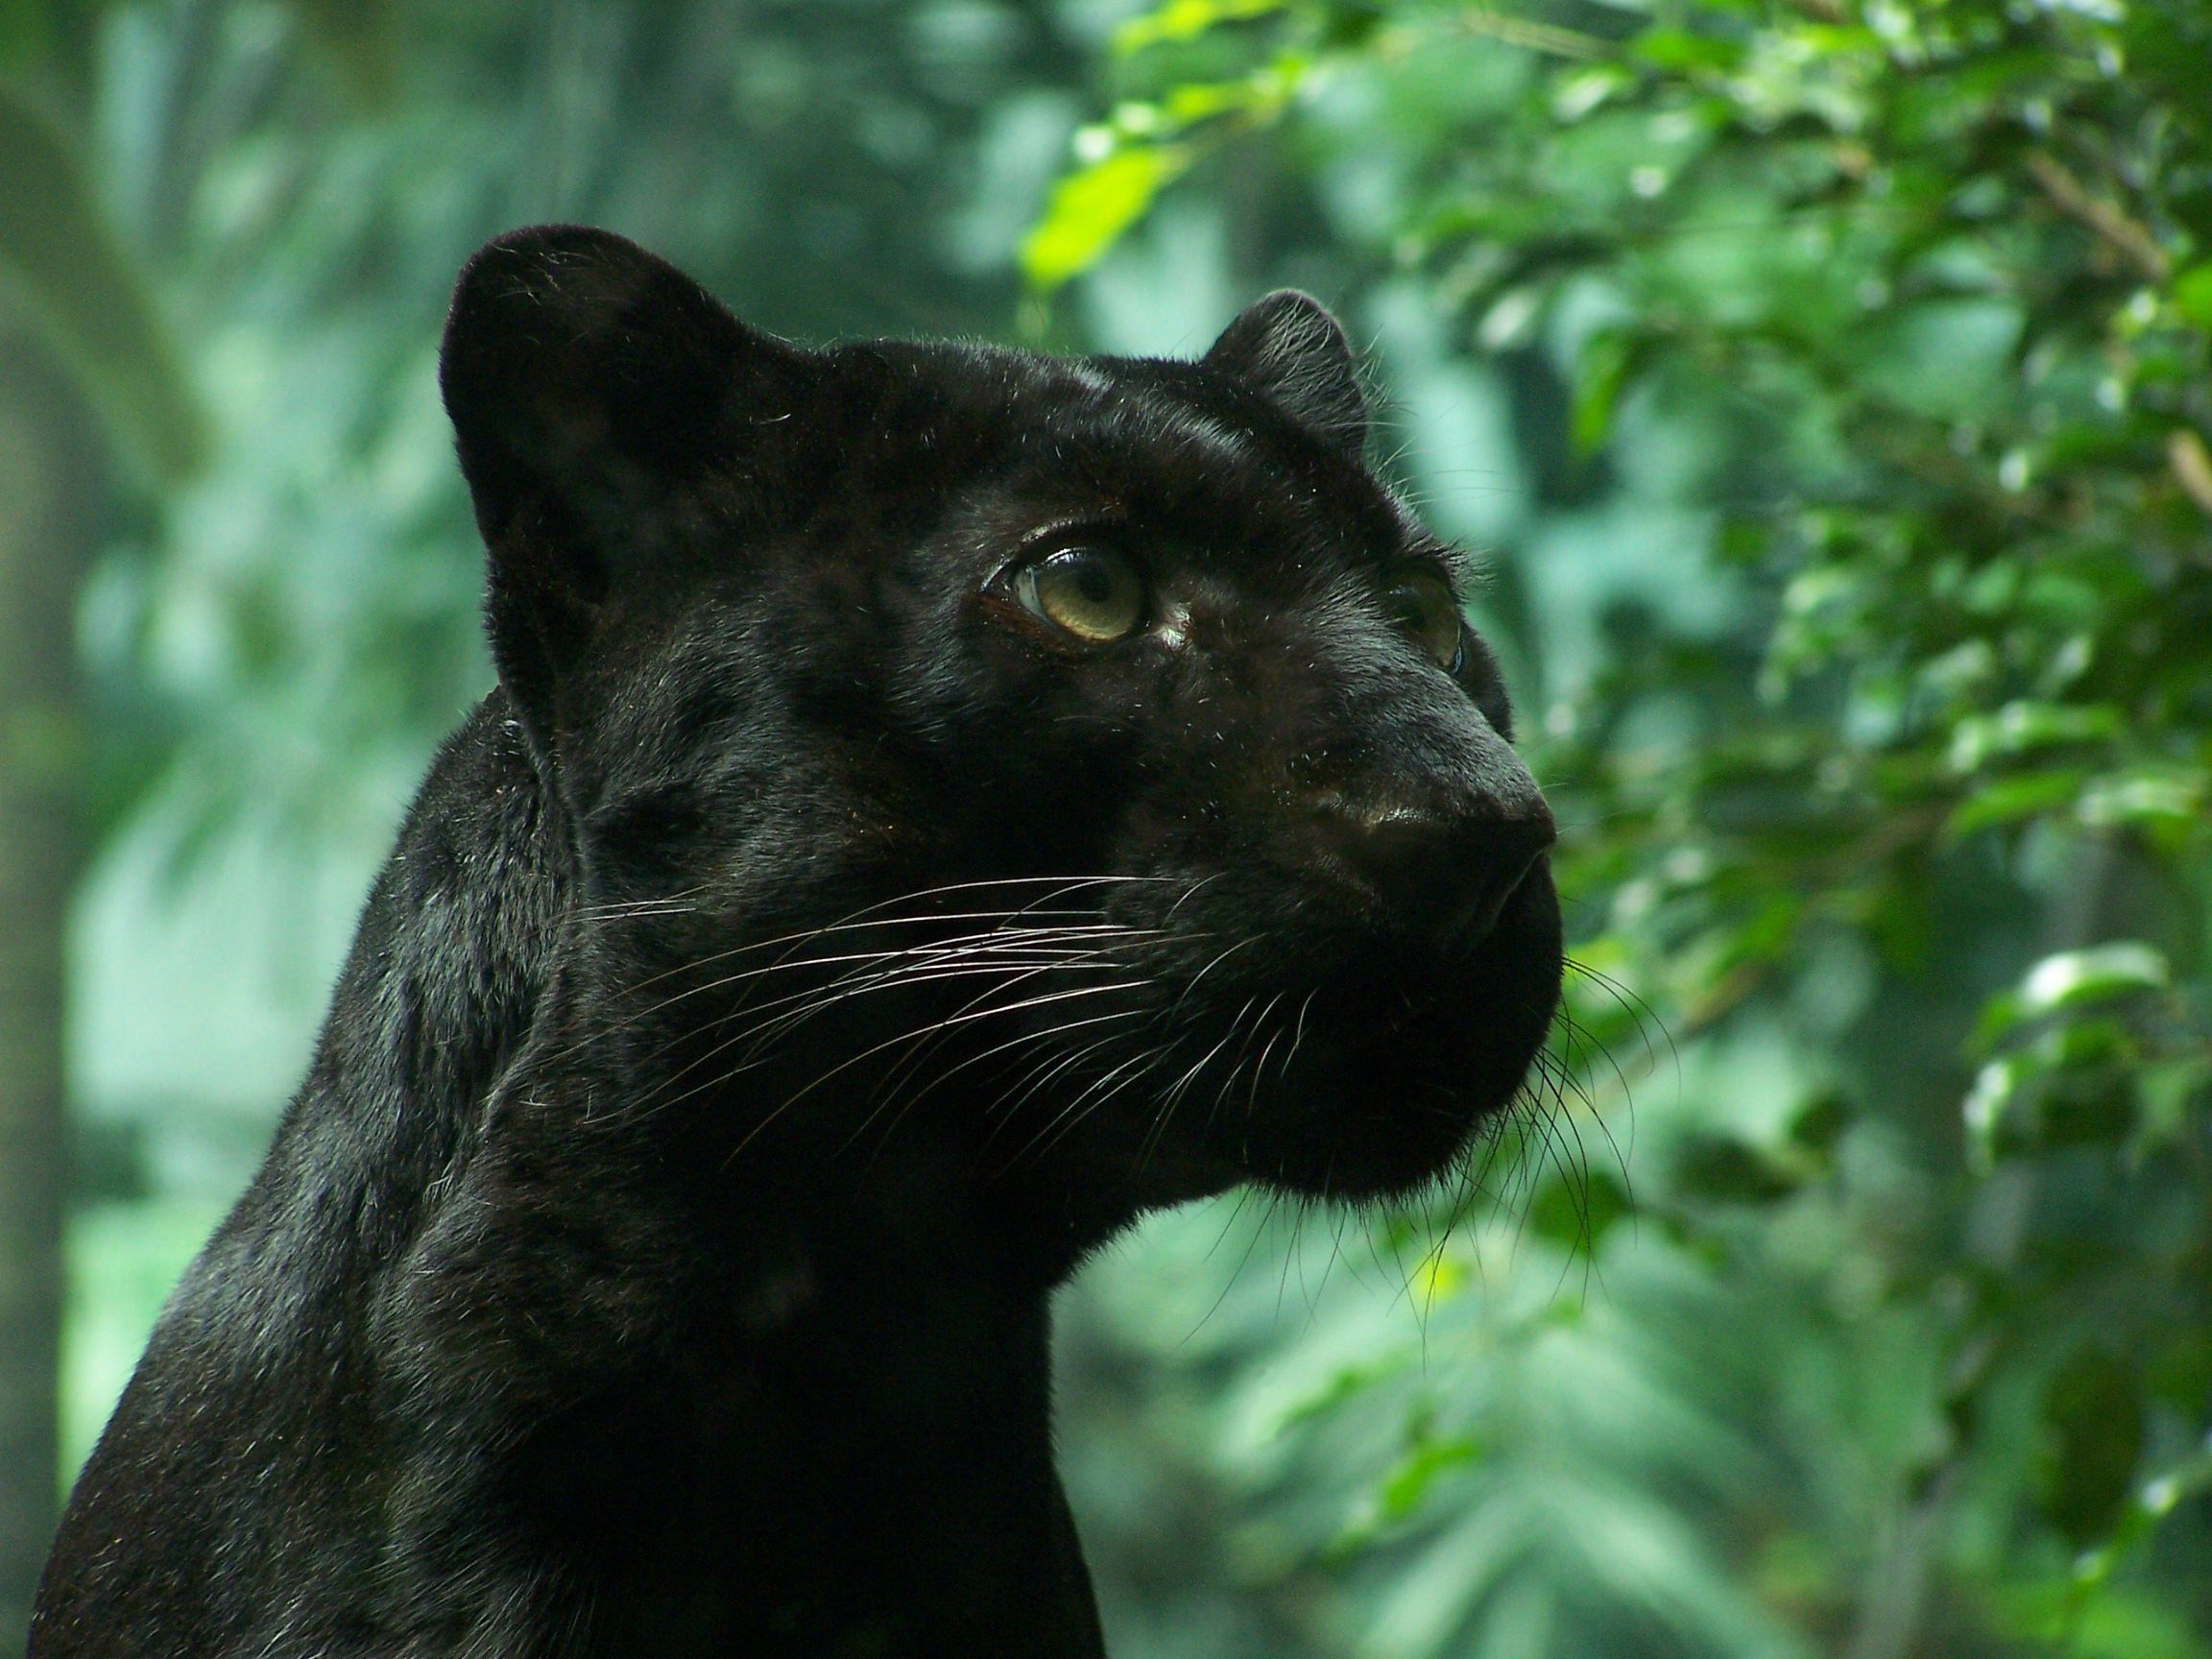 Black Panther Wallpapers Hd Free 19384 Wild Cats Black Panther Animals Wild